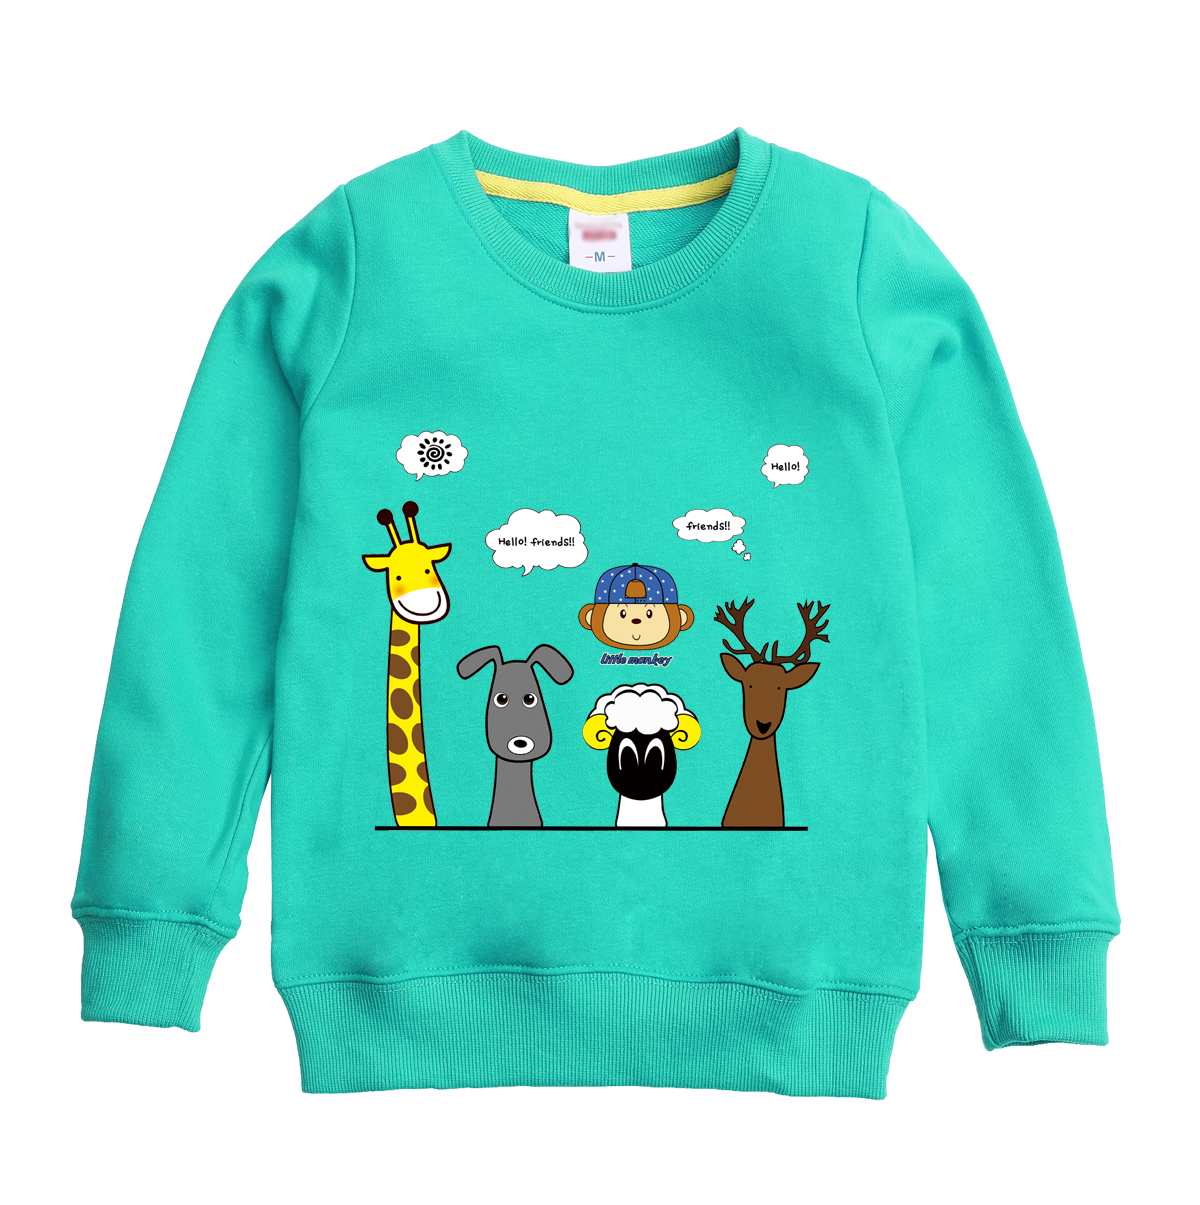 Winter autumn full sleeve sweatshirt cute animal printed design for child with eight colors for child select winter sweater